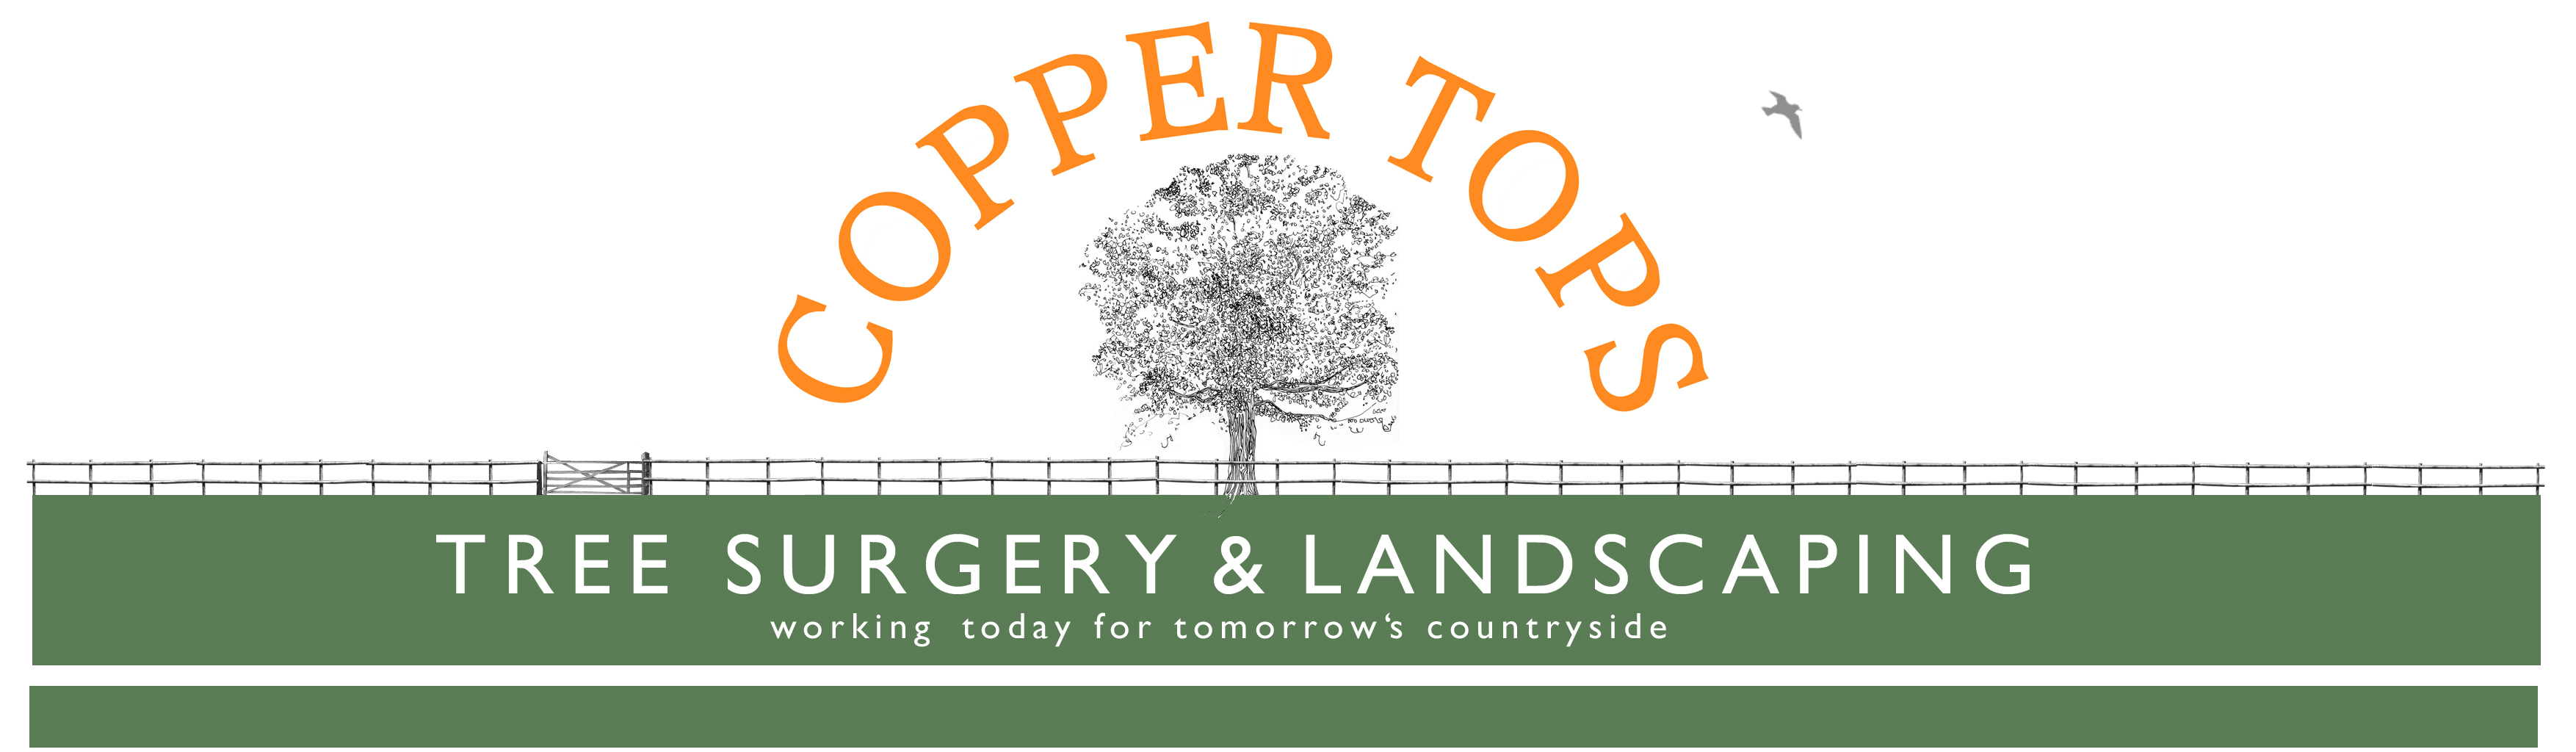 Copper Tops: Tree Surgery and Landscaping